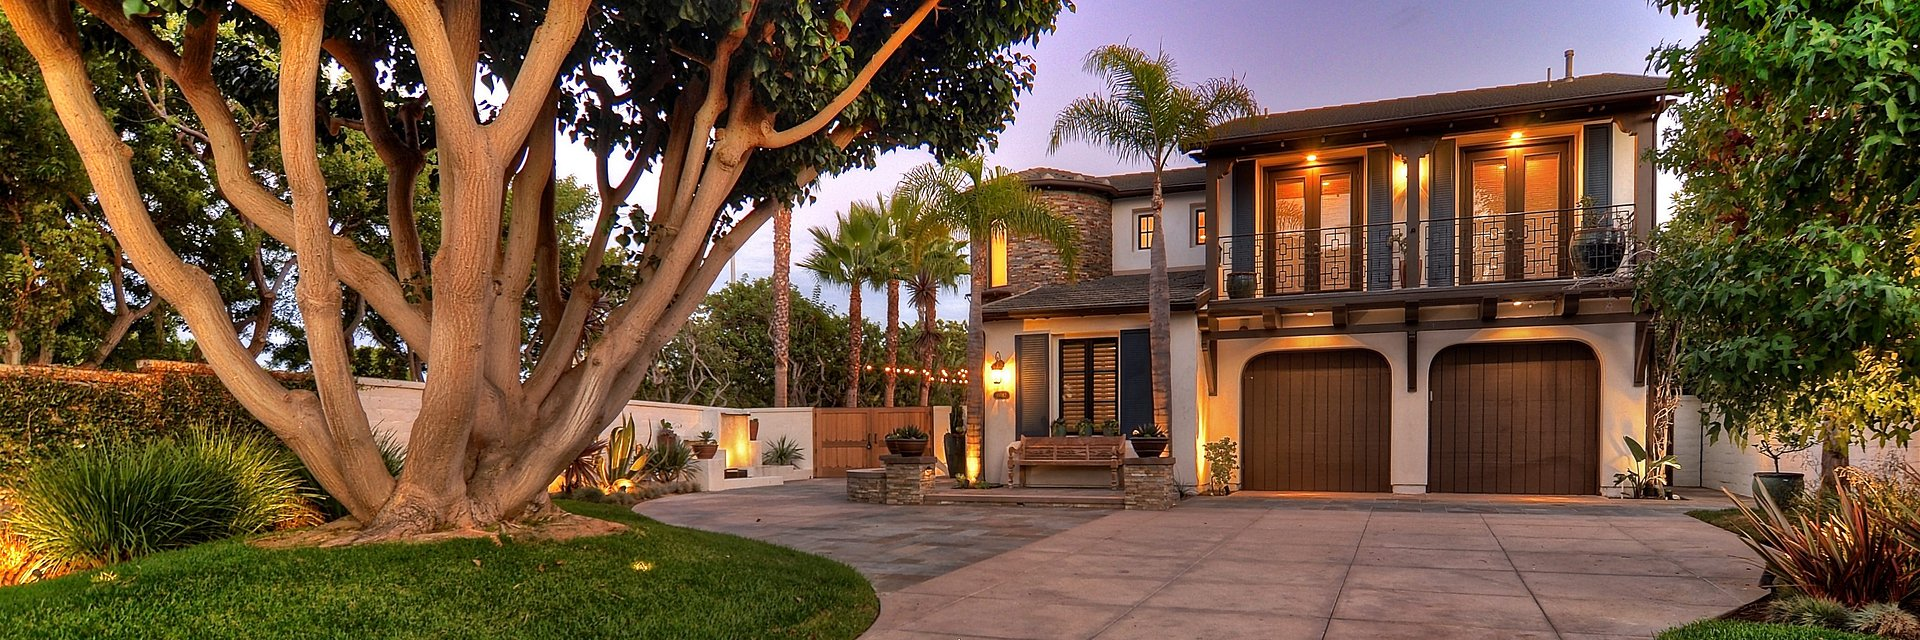 Coldwell Banker Residential Brokerage Lists Huntington Beach Property for $3.299 Million